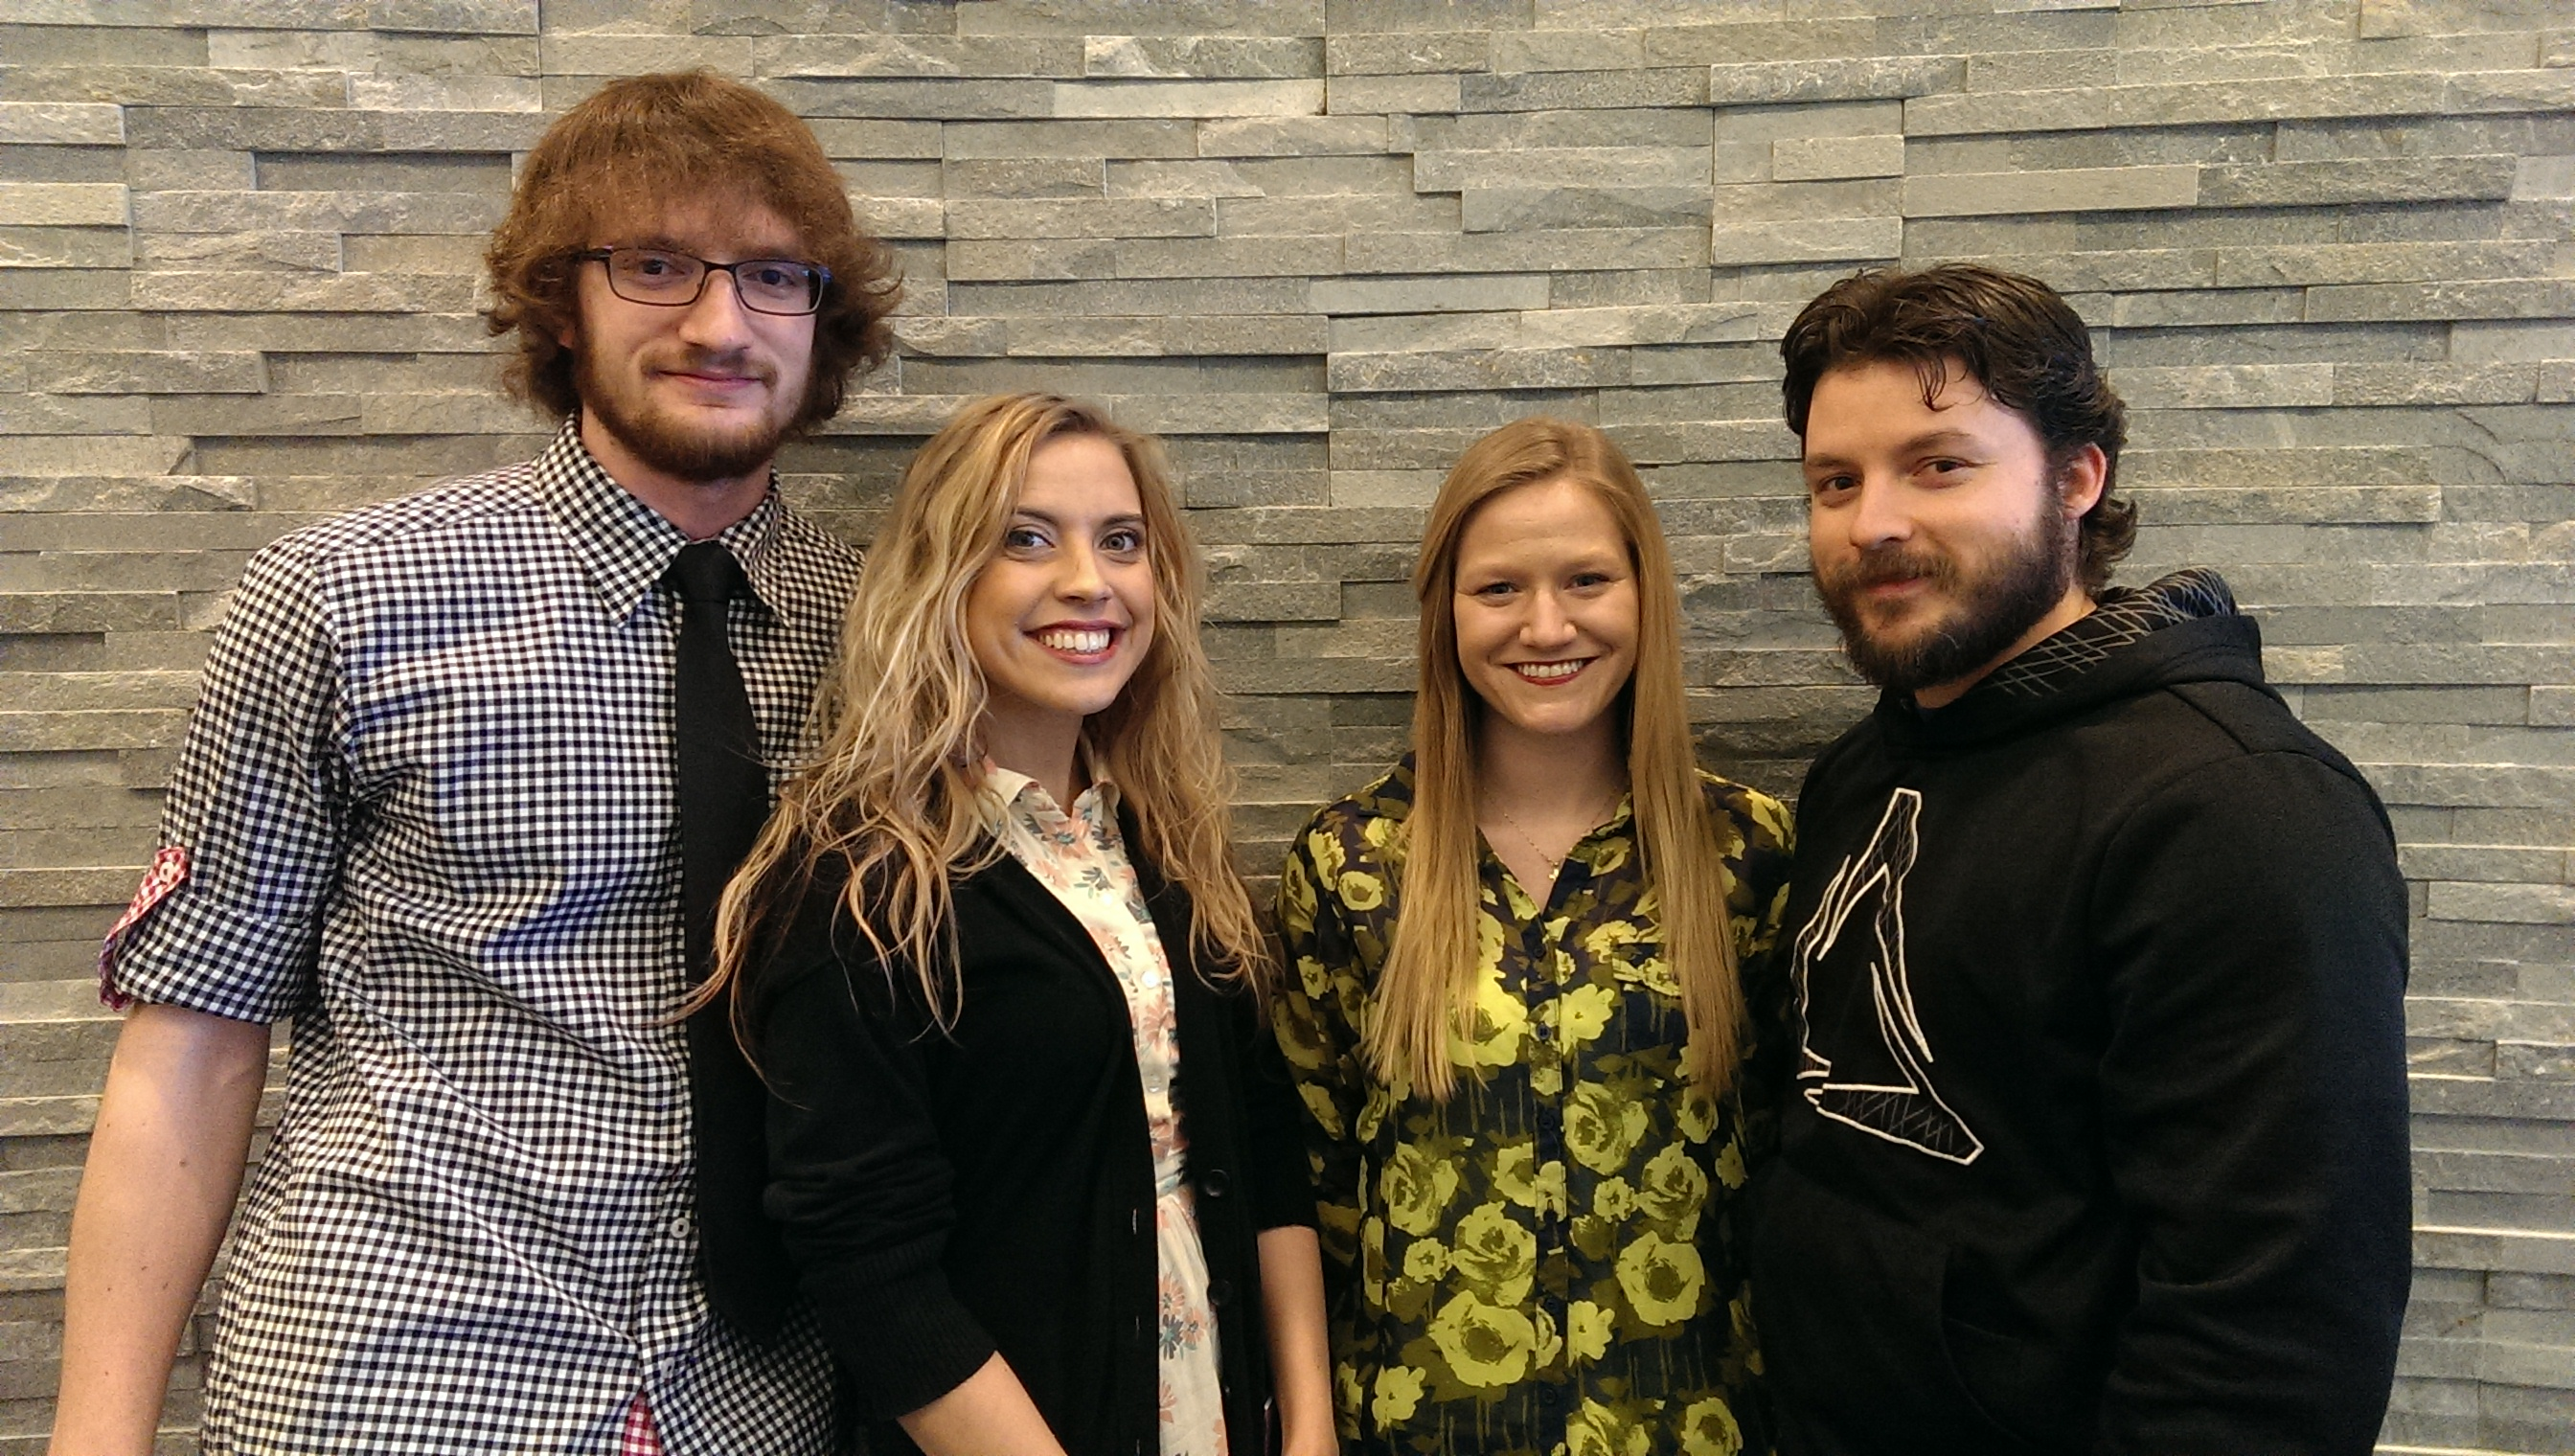 Pictured (left to right) are Vincenzo Sabelli, Shannon Reep, Morgan Fee and Curtis Coulter